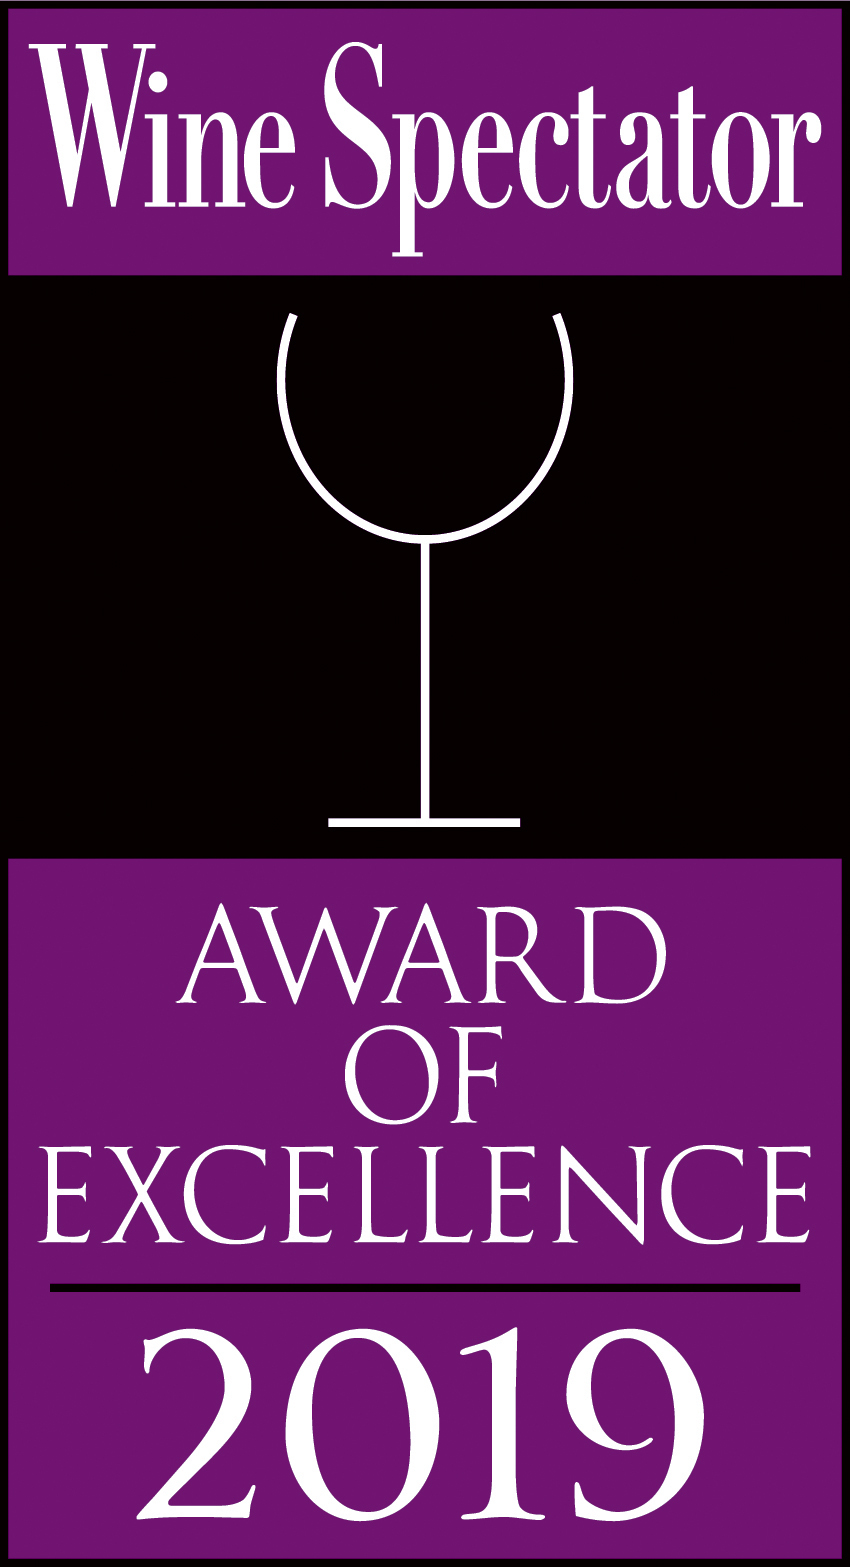 Localis Wine Spectator Award of Excellence 2019.jpg